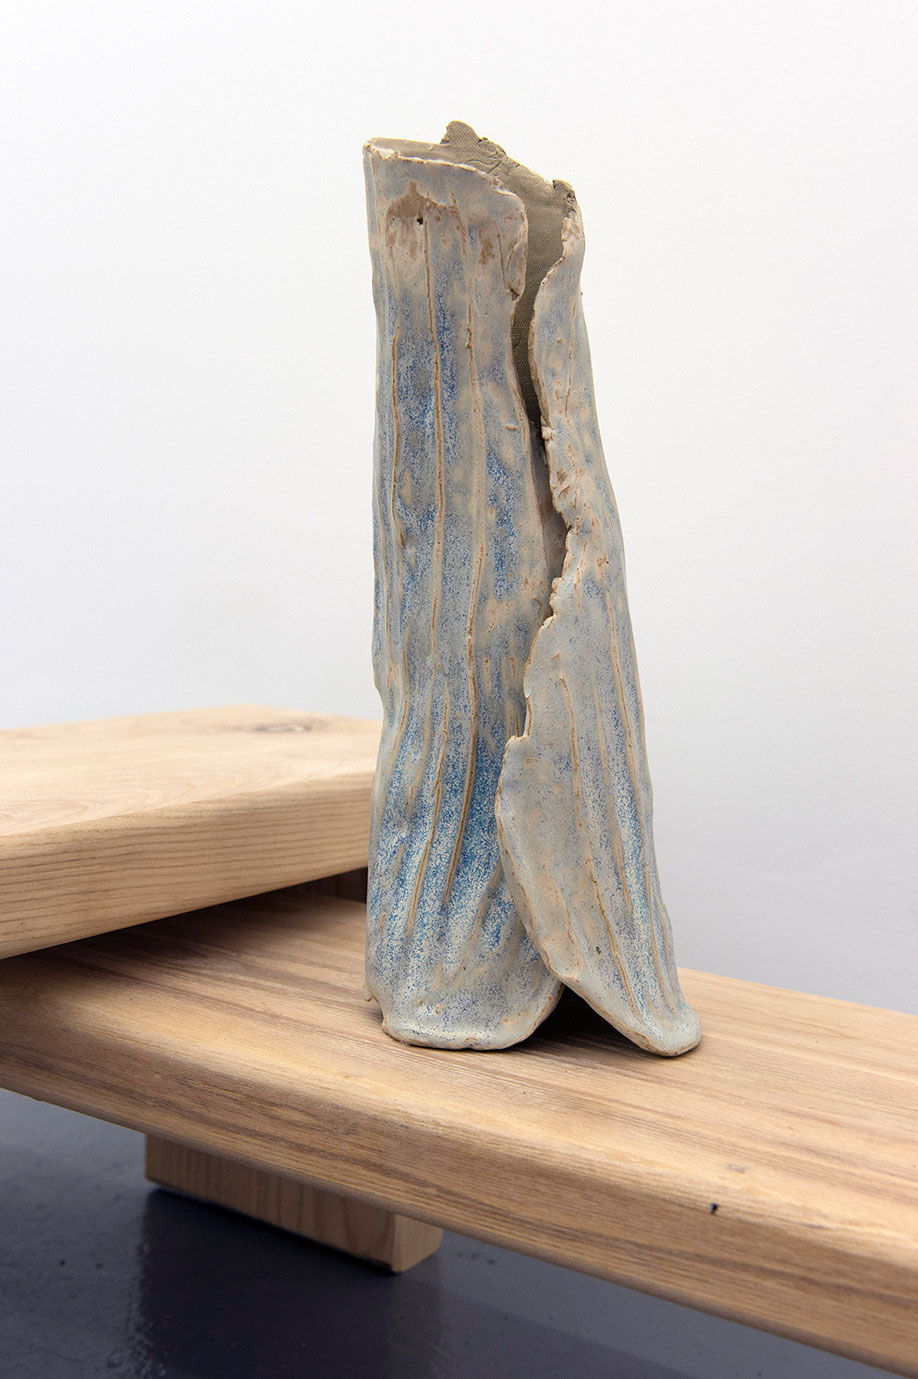 <b>Title: </b>Leg Retainer (Onus)<br /><b>Year: </b>2015<br /><b>Medium: </b>Ceramic<br /><b>Size: </b>32 x 13 x 12 cm